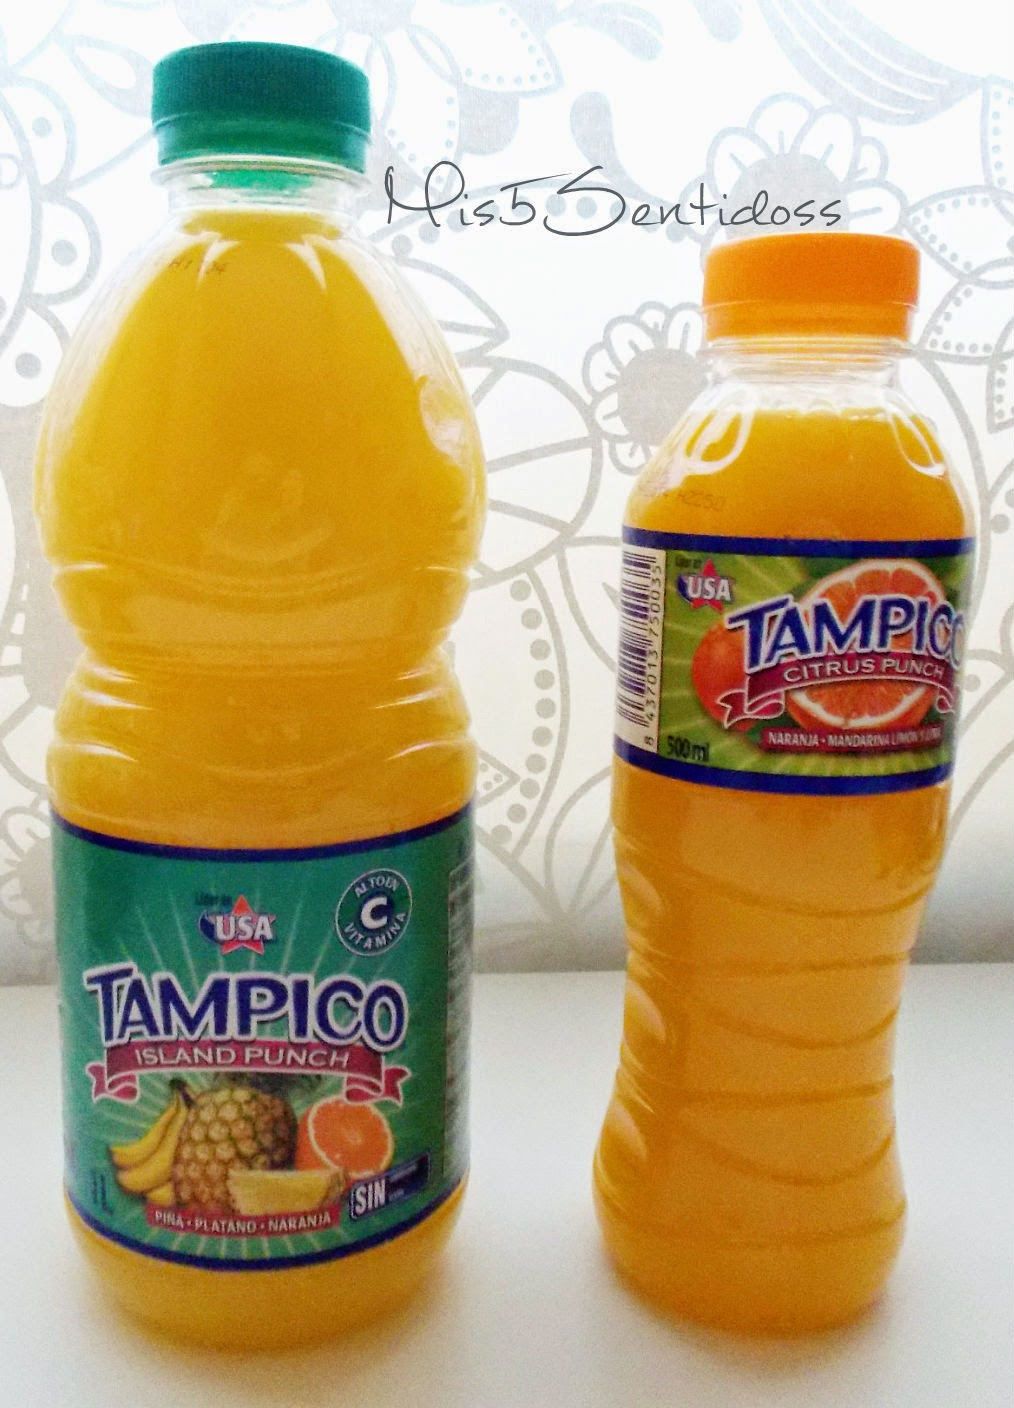 Caja degustabox 2014 Tampico Citrus Punch